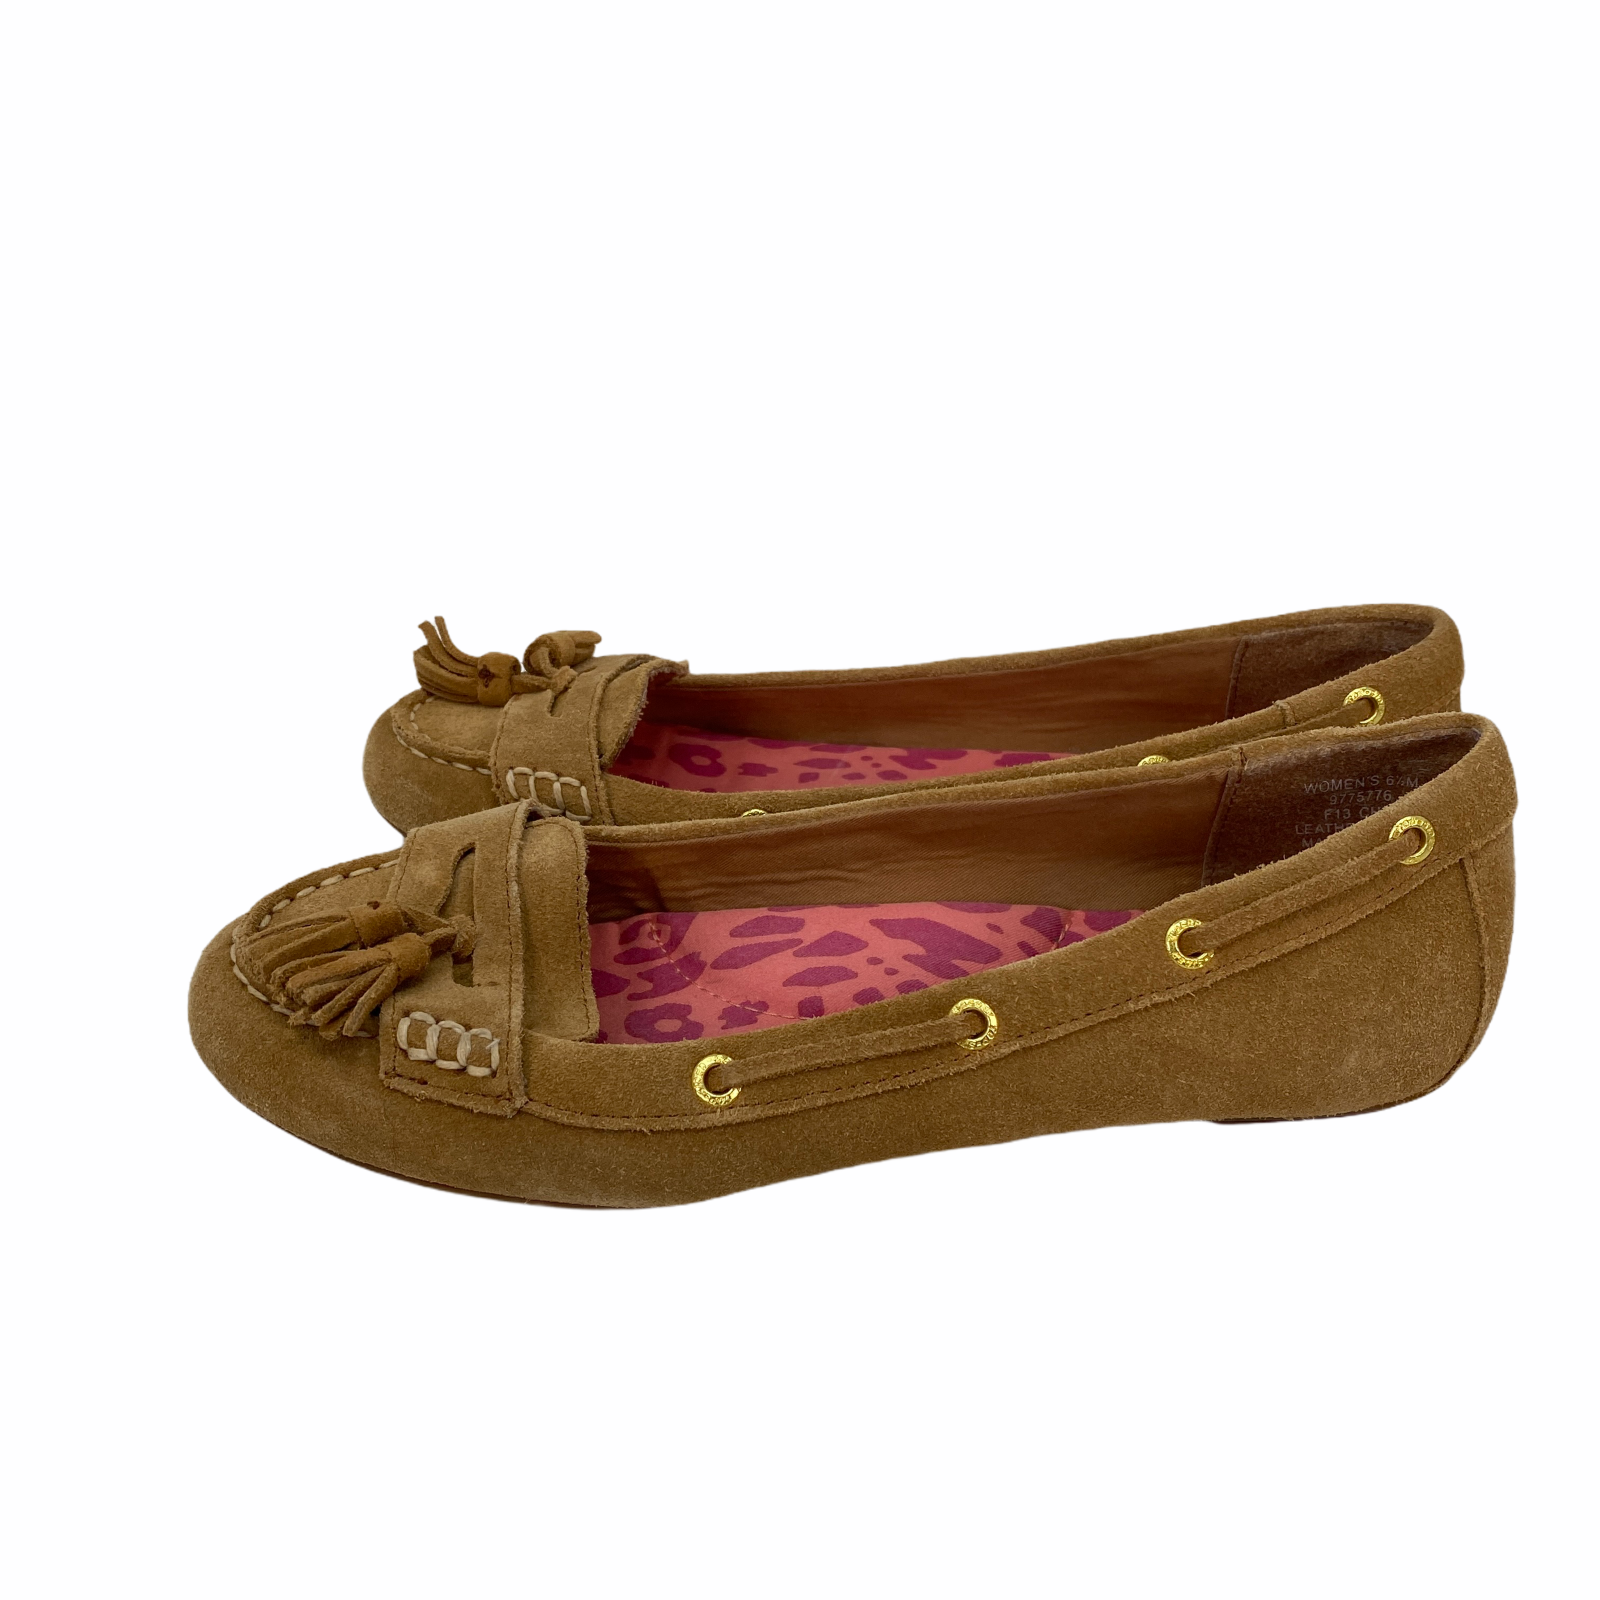 Sperry Top-Sider Brown Leather Tassel Moccasins Womens Size 6.5 M